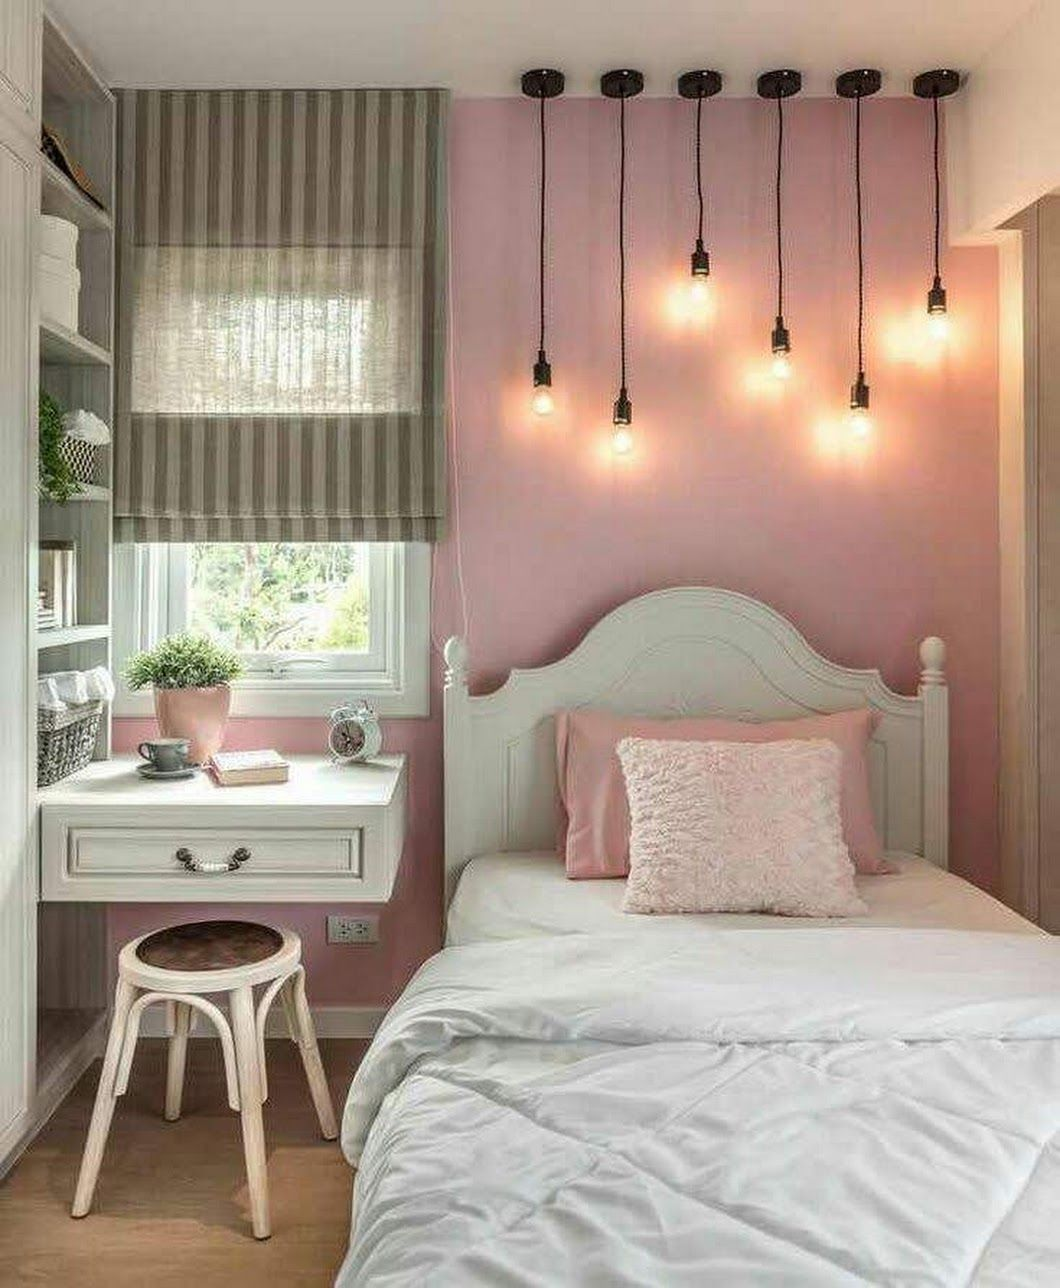 Pin By Alice De Vries On Slaapkamer Elegant Bedroom Small Girls